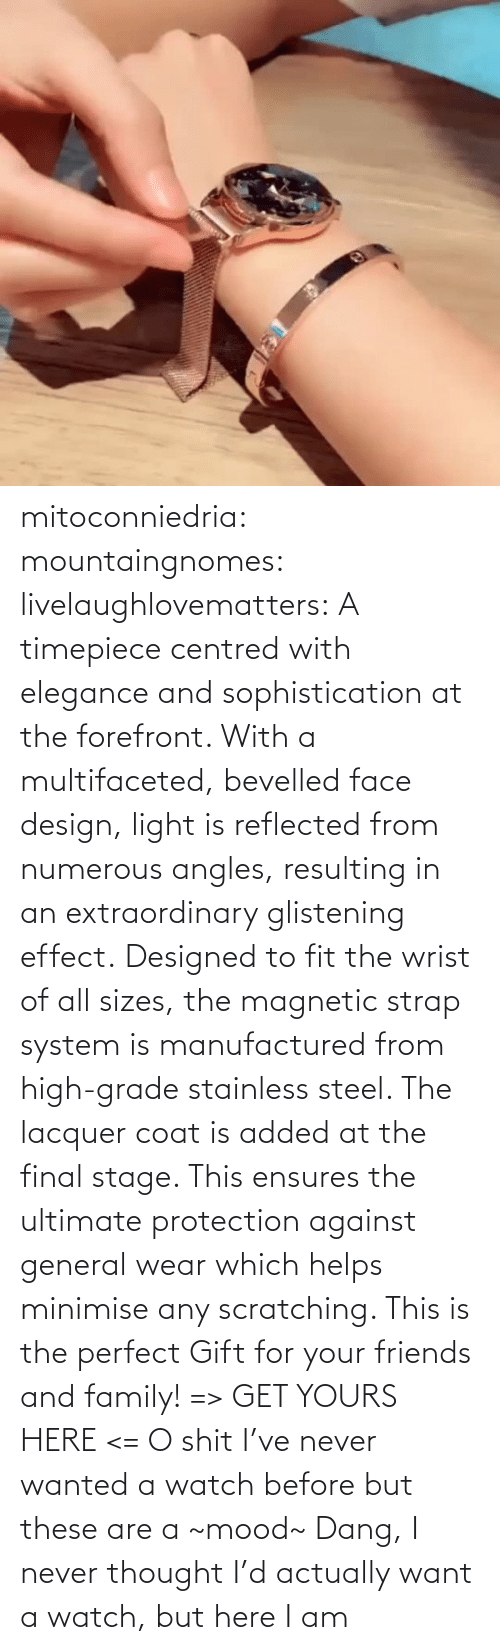 Are: mitoconniedria: mountaingnomes:   livelaughlovematters:  A timepiece centred with elegance and sophistication at the forefront. With a multifaceted, bevelled face design, light is reflected from numerous angles, resulting in an extraordinary glistening effect. Designed to fit the wrist of all sizes, the magnetic strap system is manufactured from high-grade stainless steel. The lacquer coat is added at the final stage. This ensures the ultimate protection against general wear which helps minimise any scratching. This is the perfect Gift for your friends and family! => GET YOURS HERE <=  O shit I've never wanted a watch before but these are a ~mood~    Dang, I never thought I'd actually want a watch, but here I am